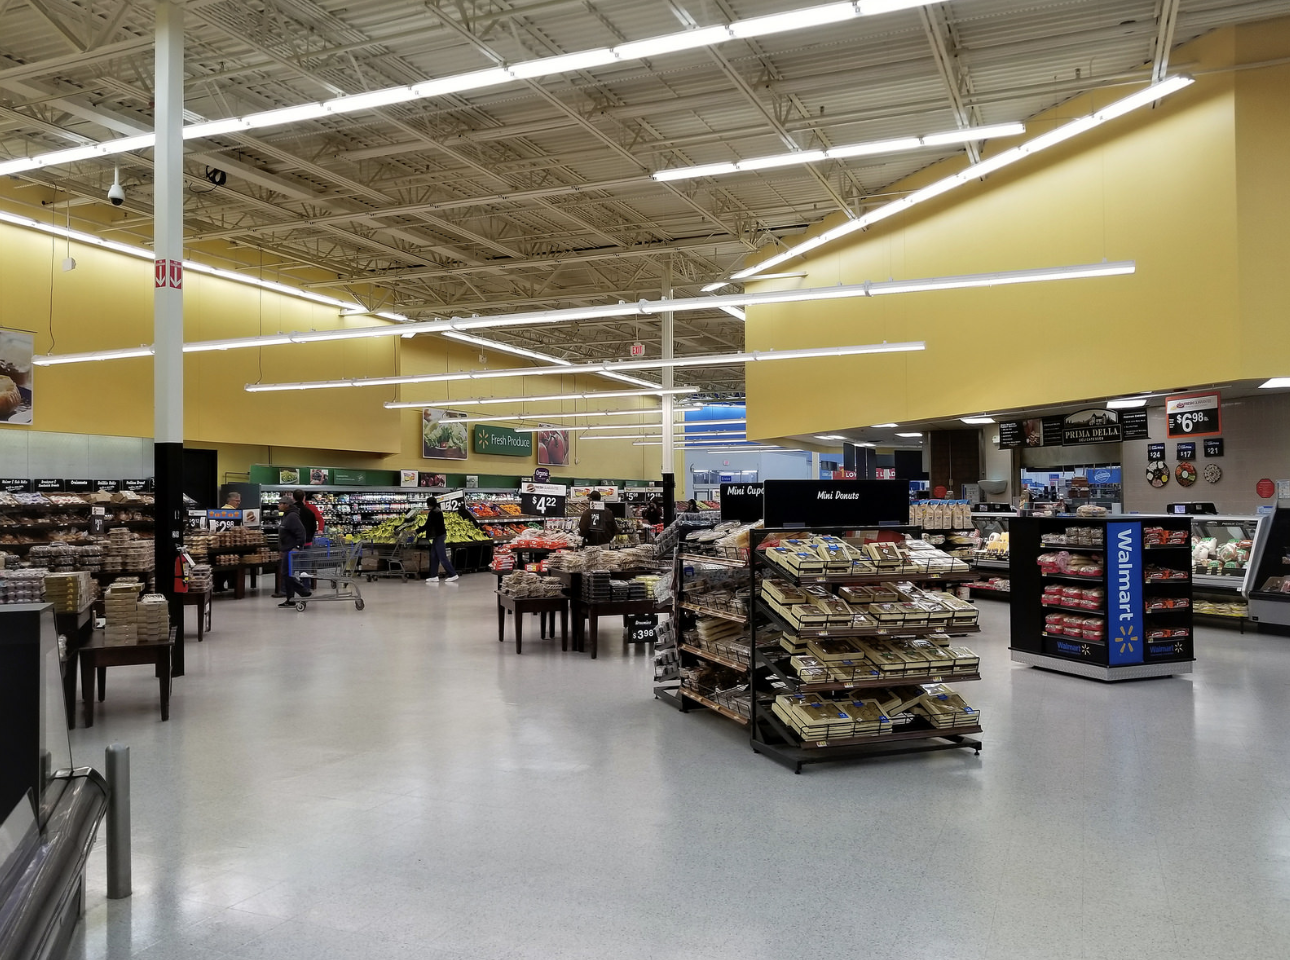 grocery area